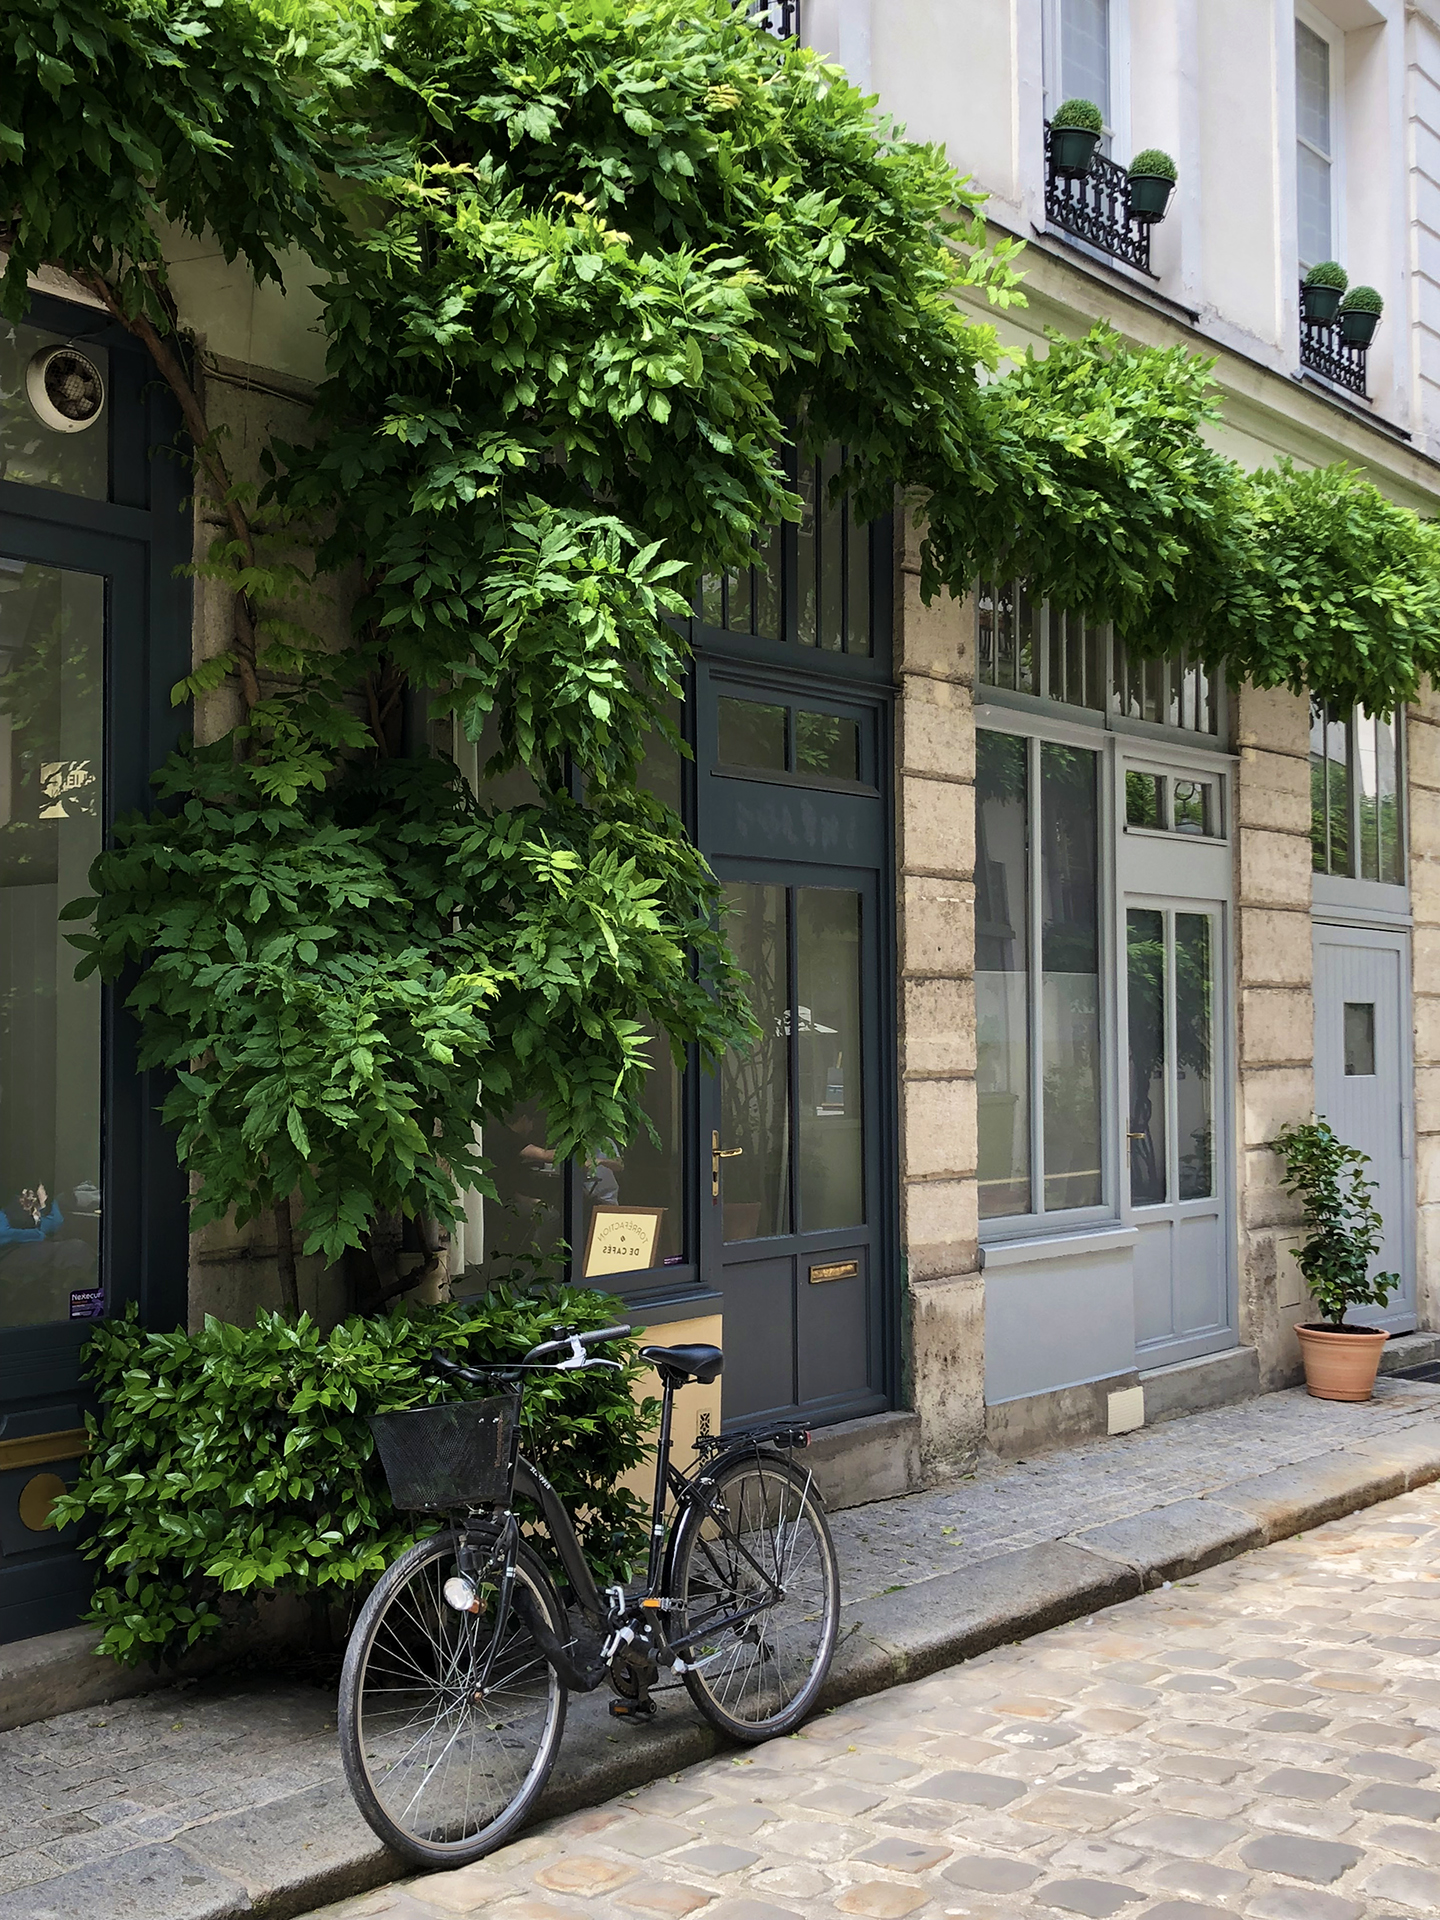 Cour Damoye, a peaceful retreat just one block from place de la Bastille.